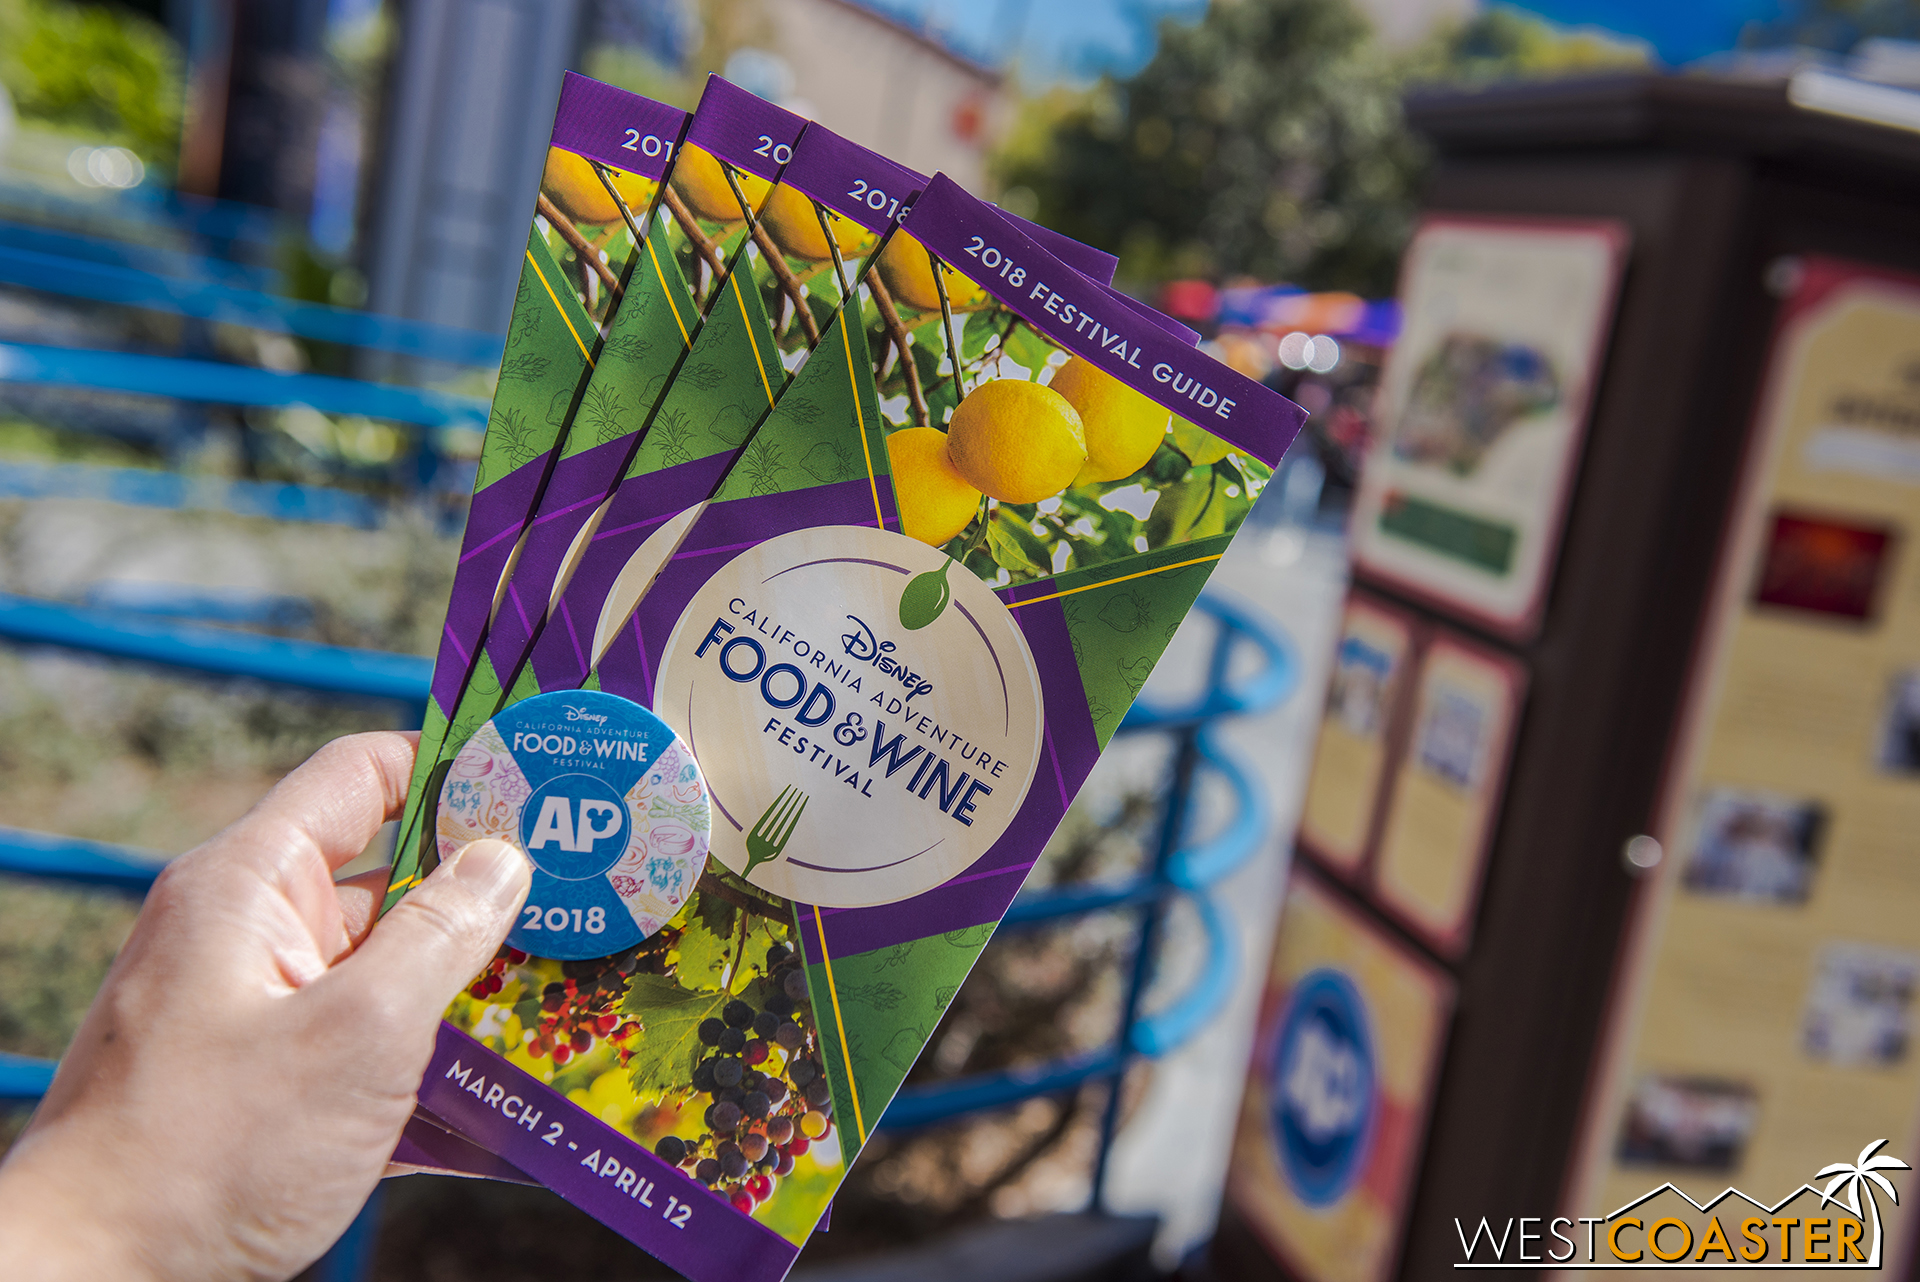 It's Food & Wine time again! The festival guide is pretty stylish, and Annual Passholders can get a pin in Hollywood Land at the back corner. It's the same pin every week this year.